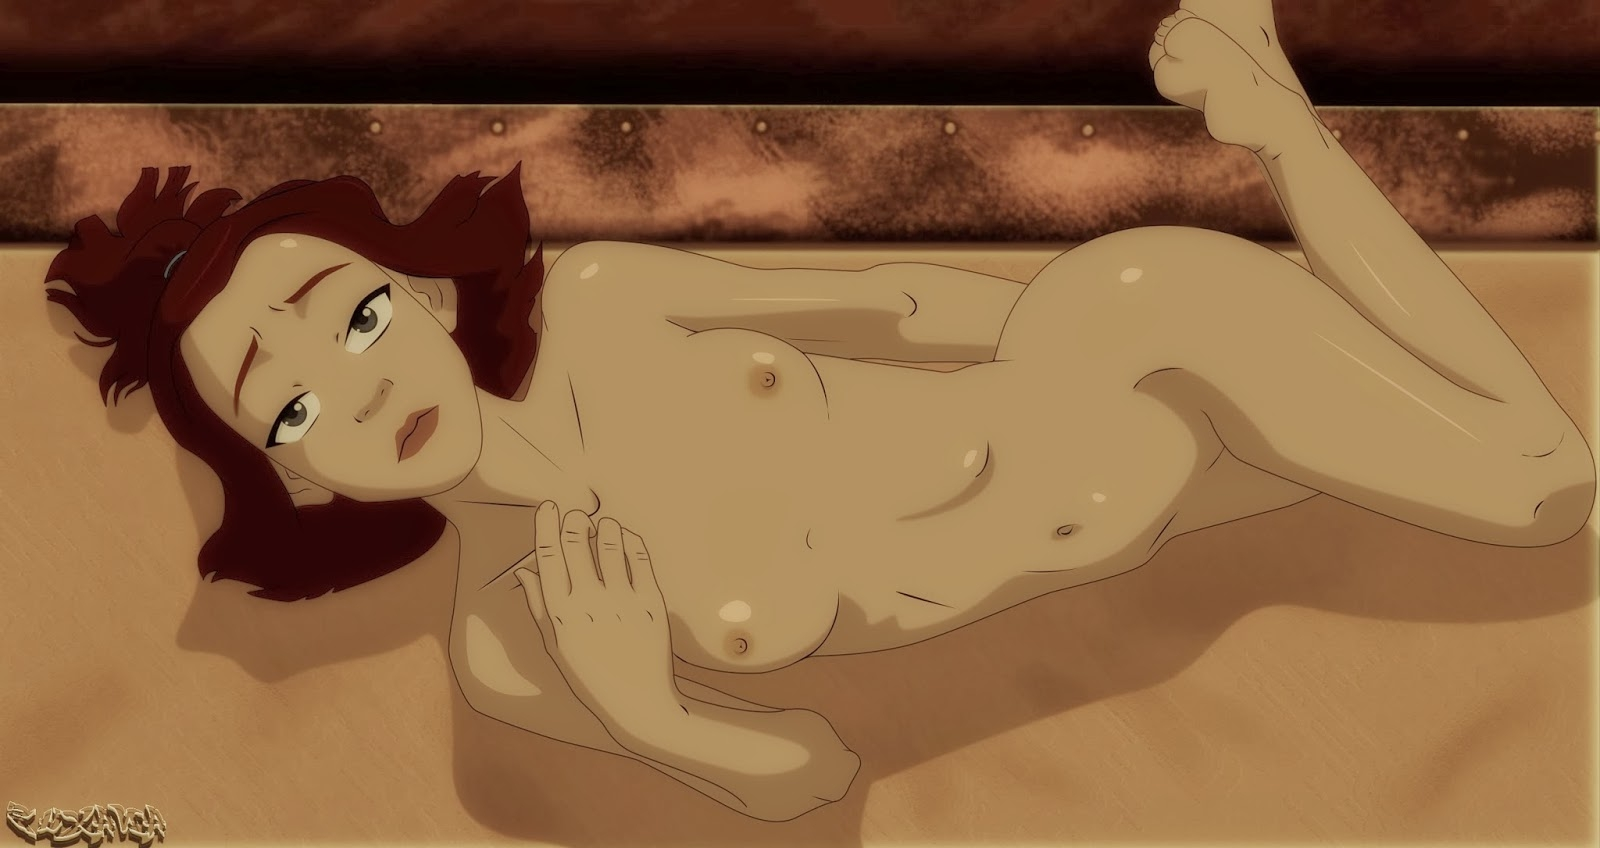 the-girl-from-avatar-the-last-airbender-naked-sex-fuck